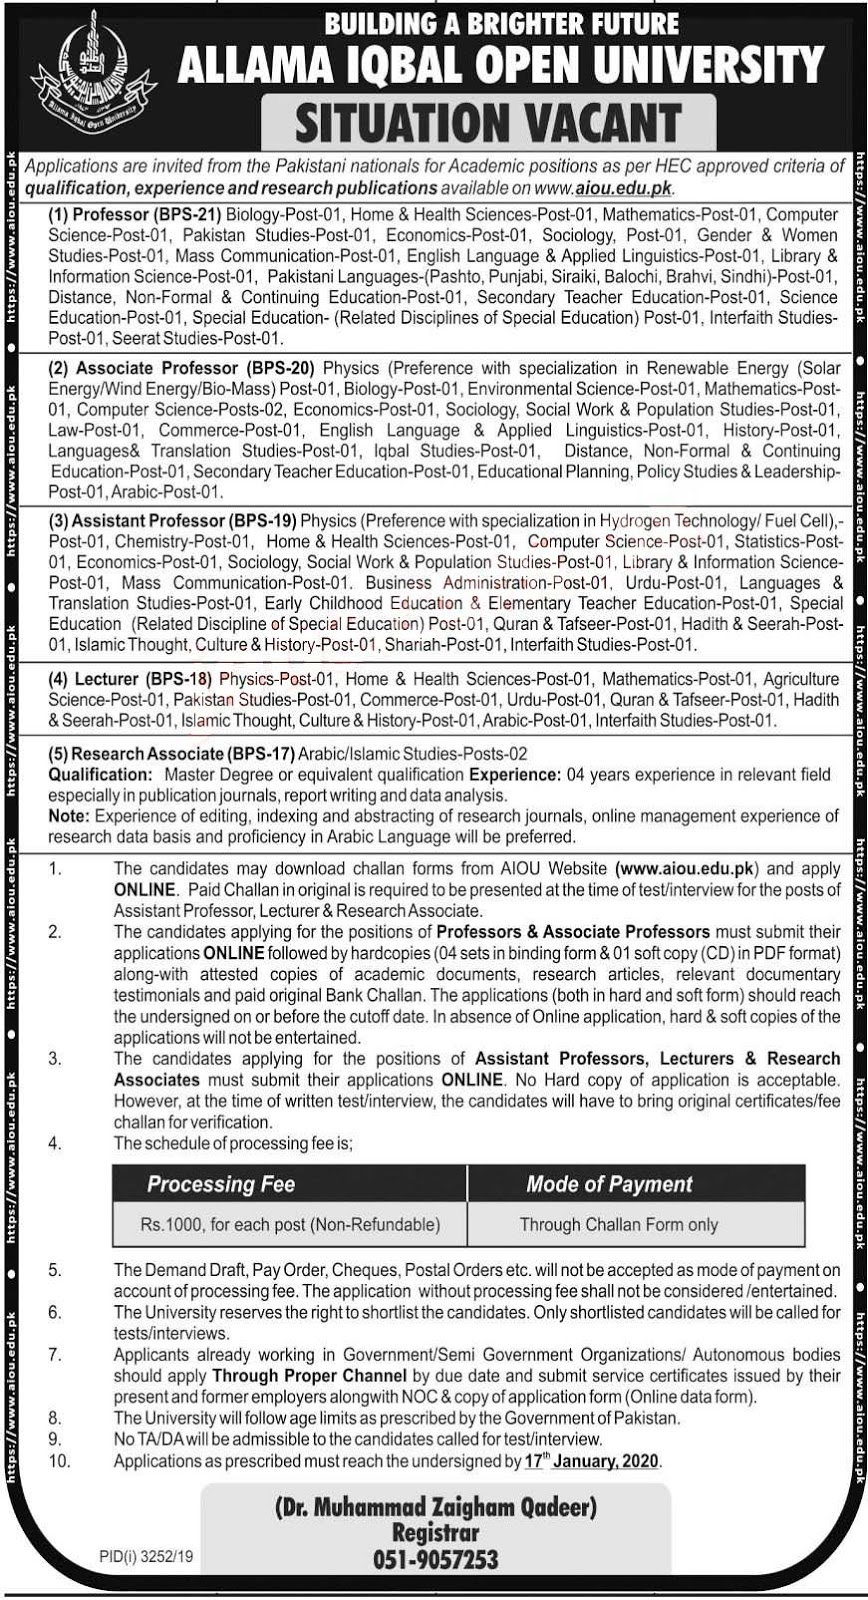 Jobs in Allama Iqbal Open University Latest Advertisement 2020